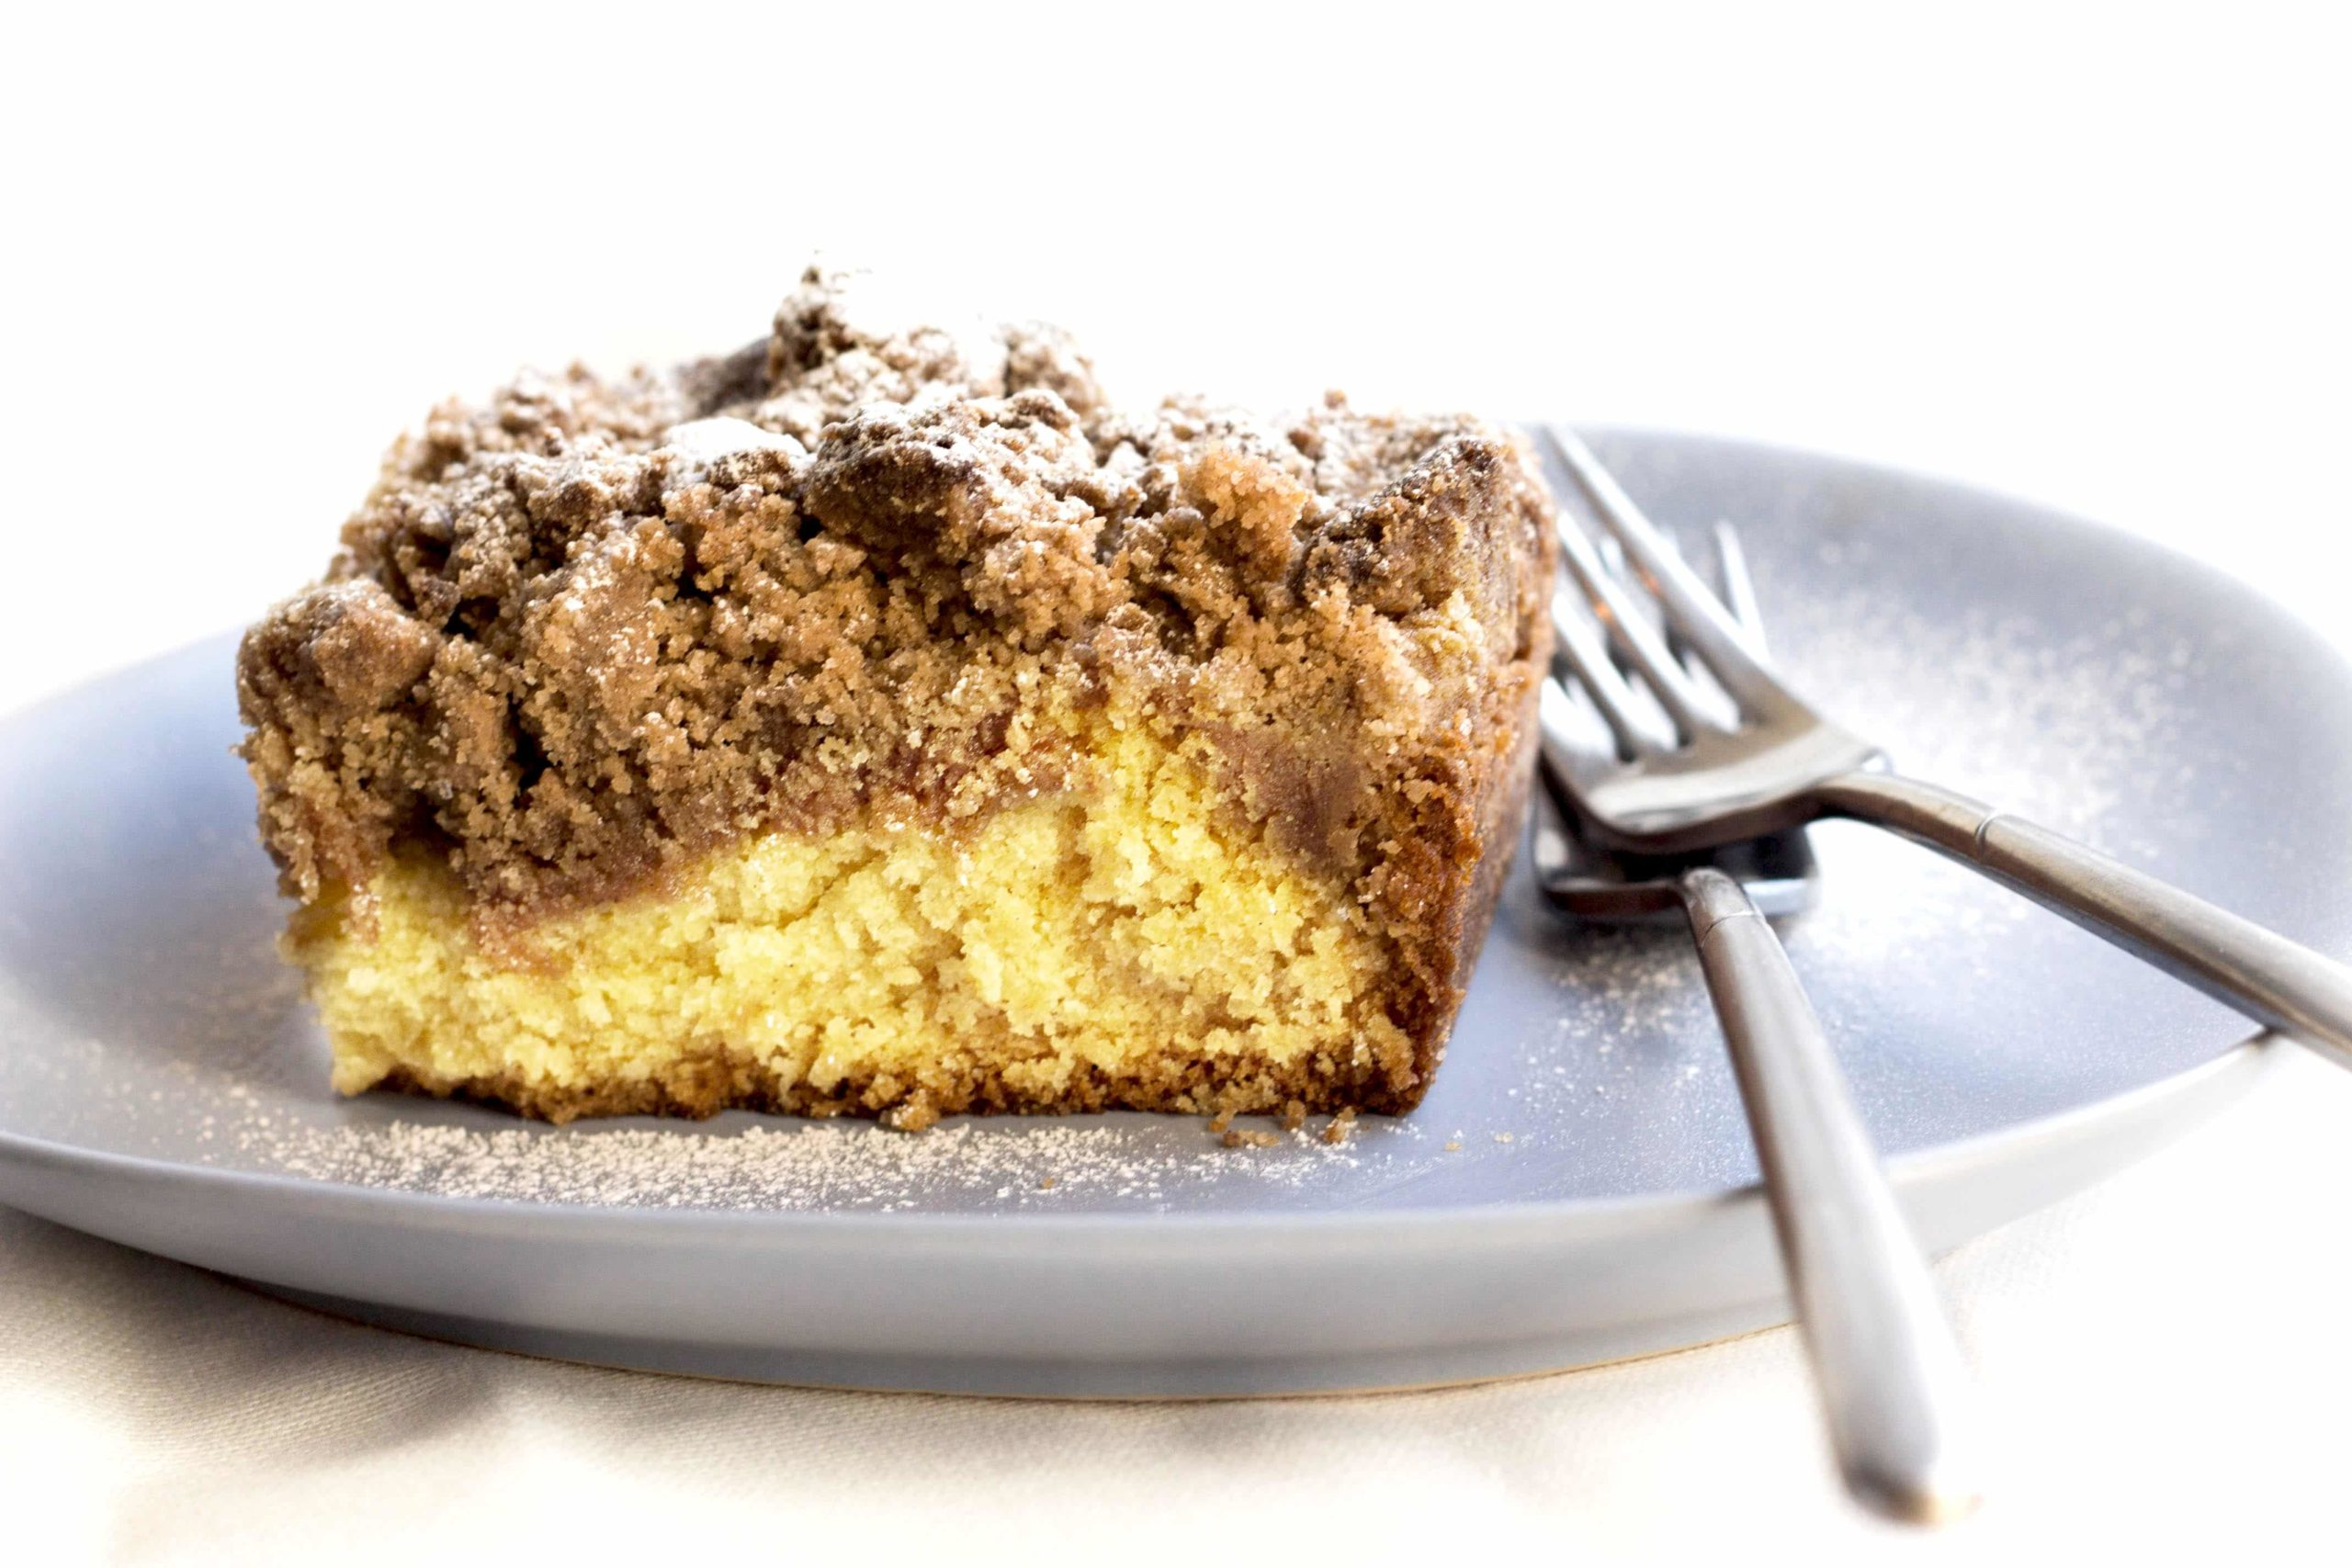 A slice of New Jersey crumb cake on a plate with two forks